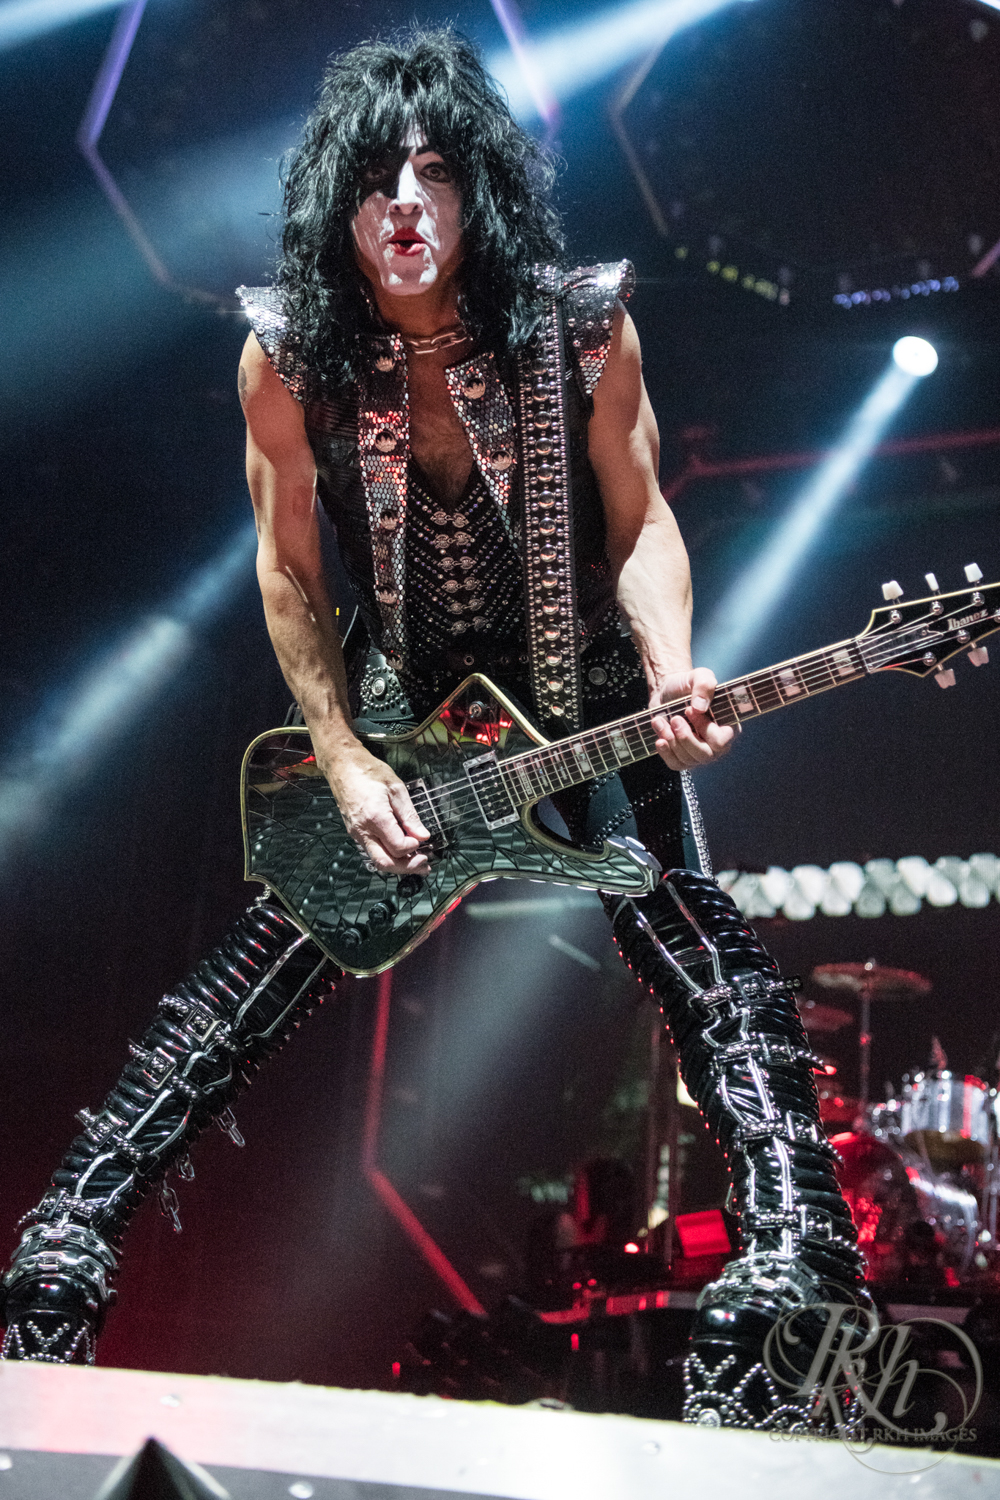 Kiss - End of the Road Tour - Target Center - Minneapolis - Concert Photography - RKH Images  (8 of 12).jpg